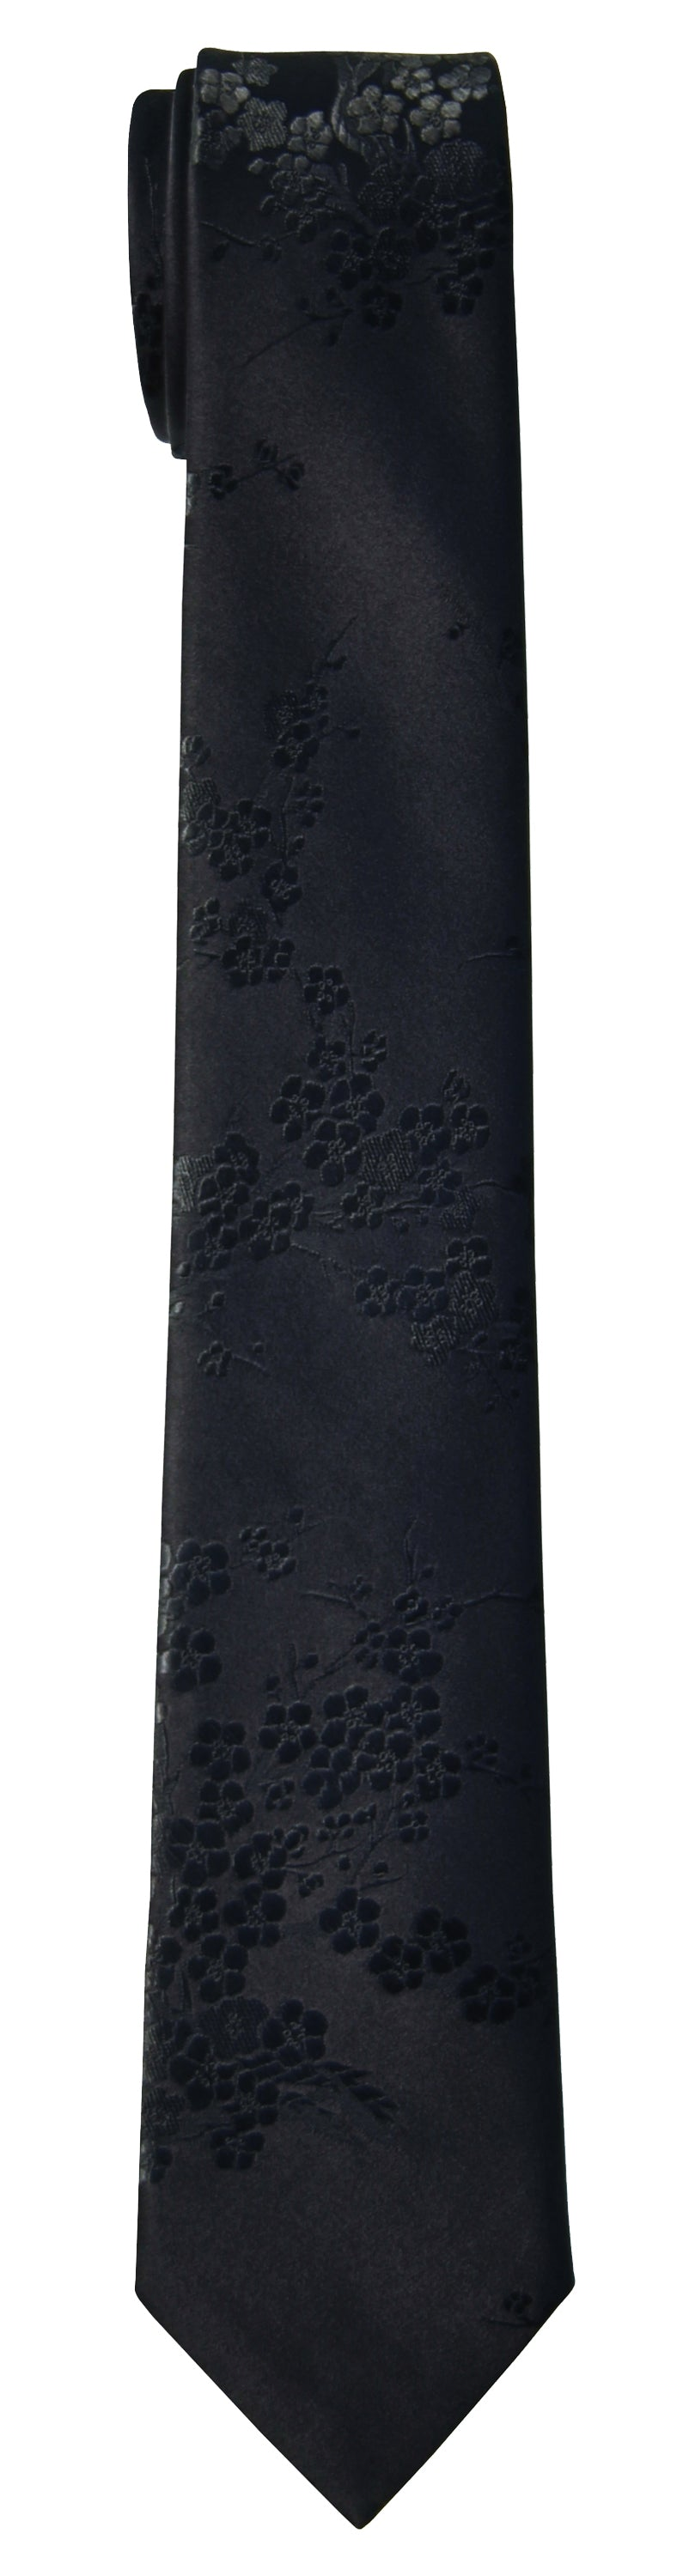 Mimi Fong Cherry Blossom Tie in Black